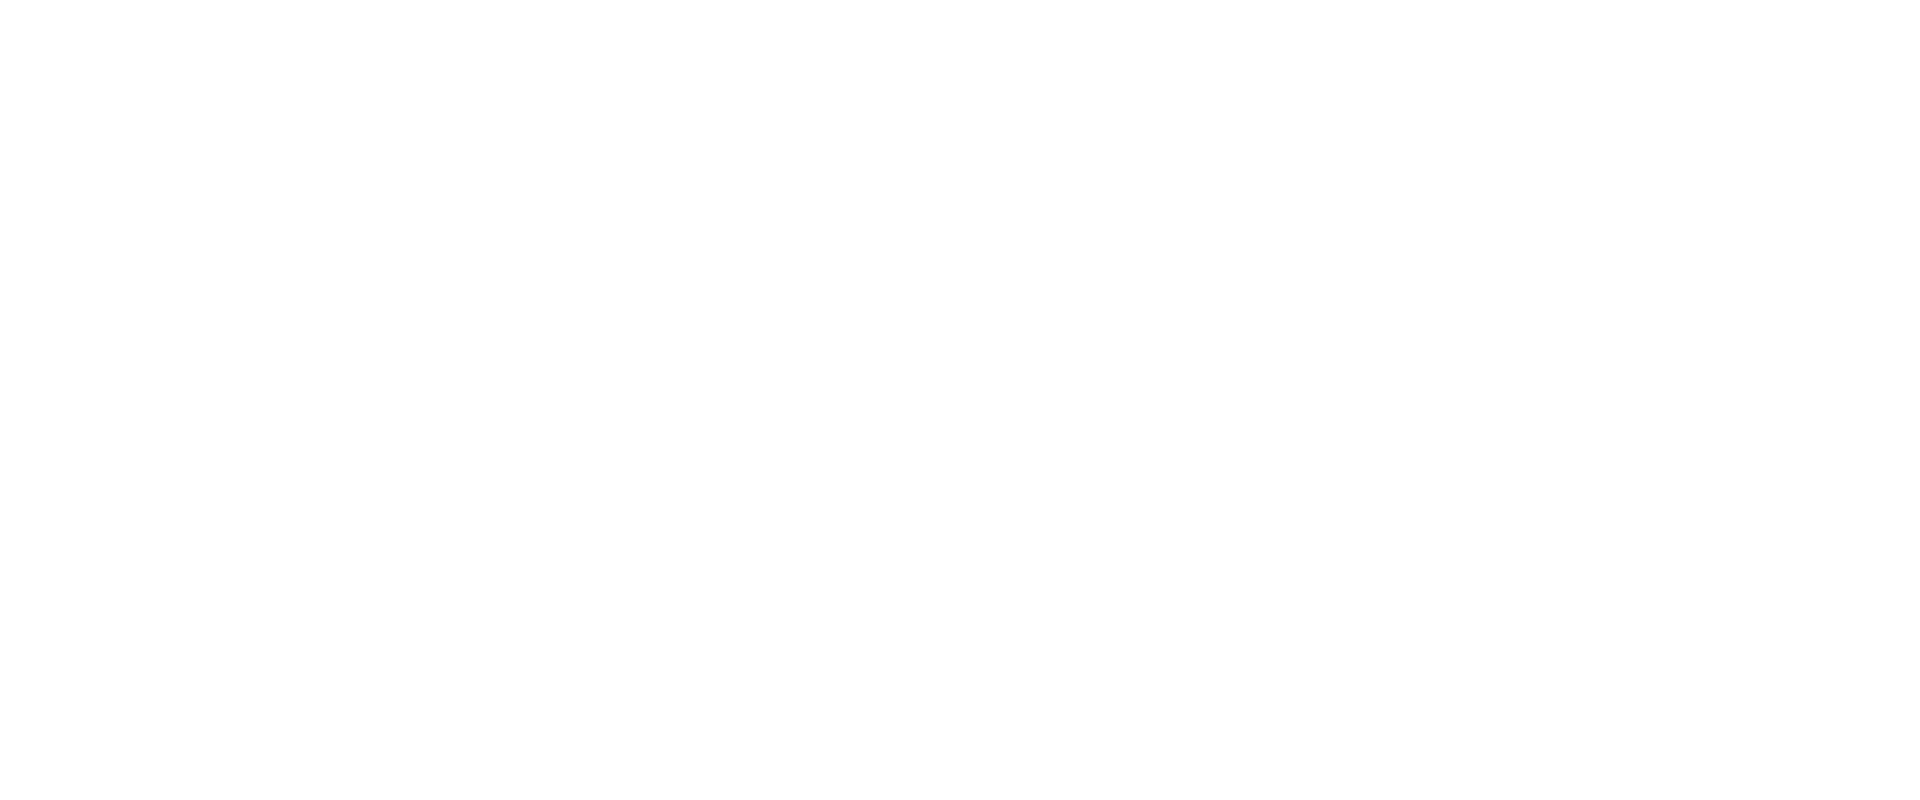 Anita's Health & Beauty Clinic